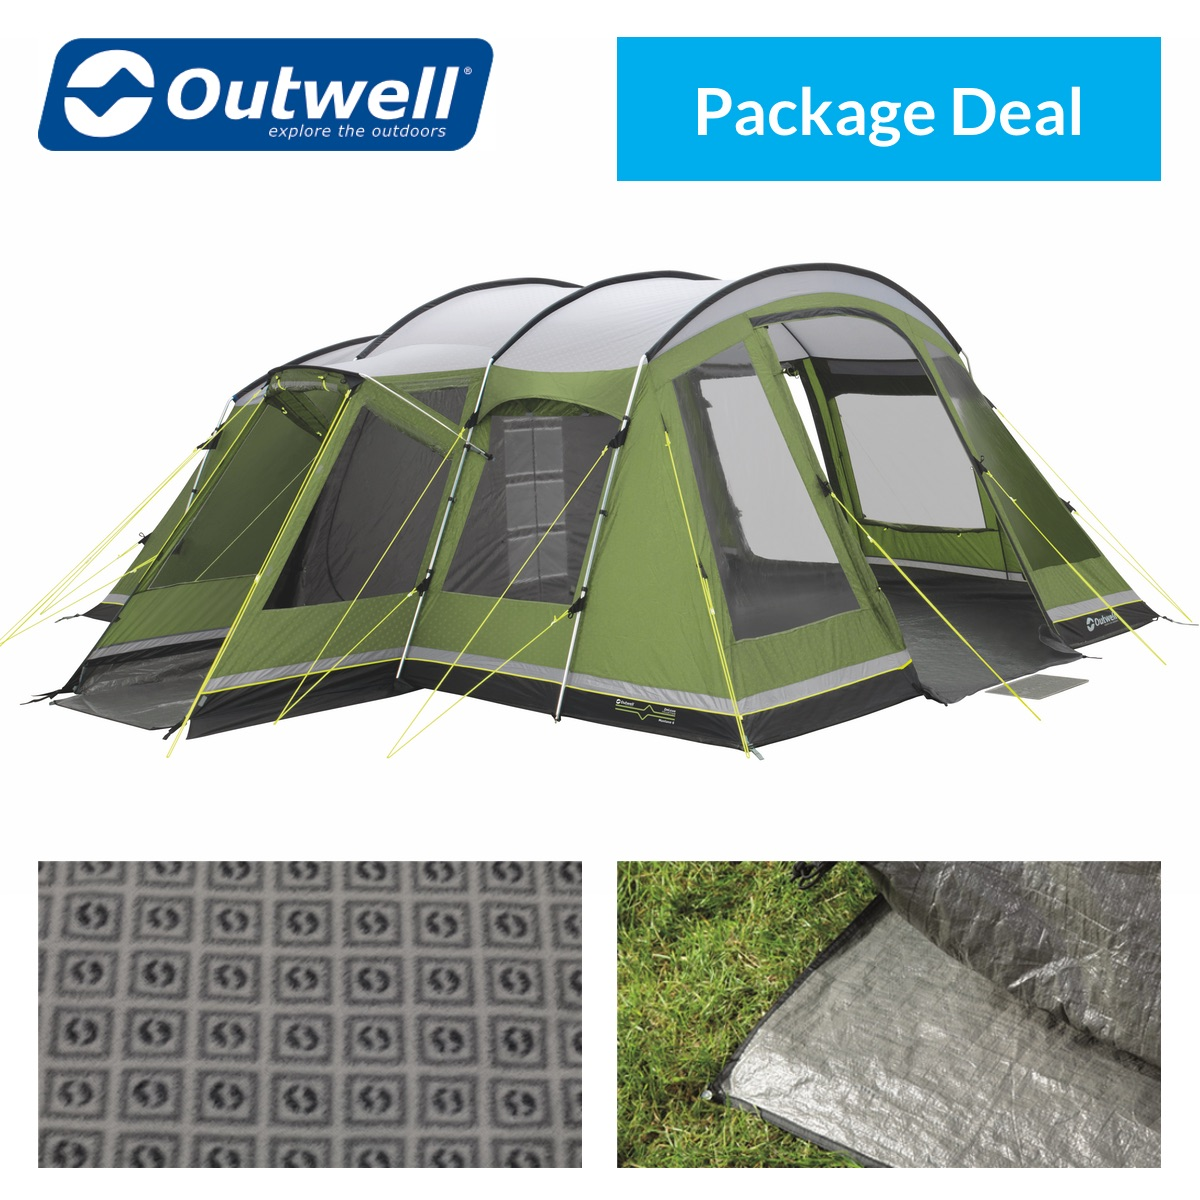 Outwell Montana 6 Tent Package Deal  sc 1 st  Purely Outdoors & Outwell Montana 6 Tent | Purely Outdoors